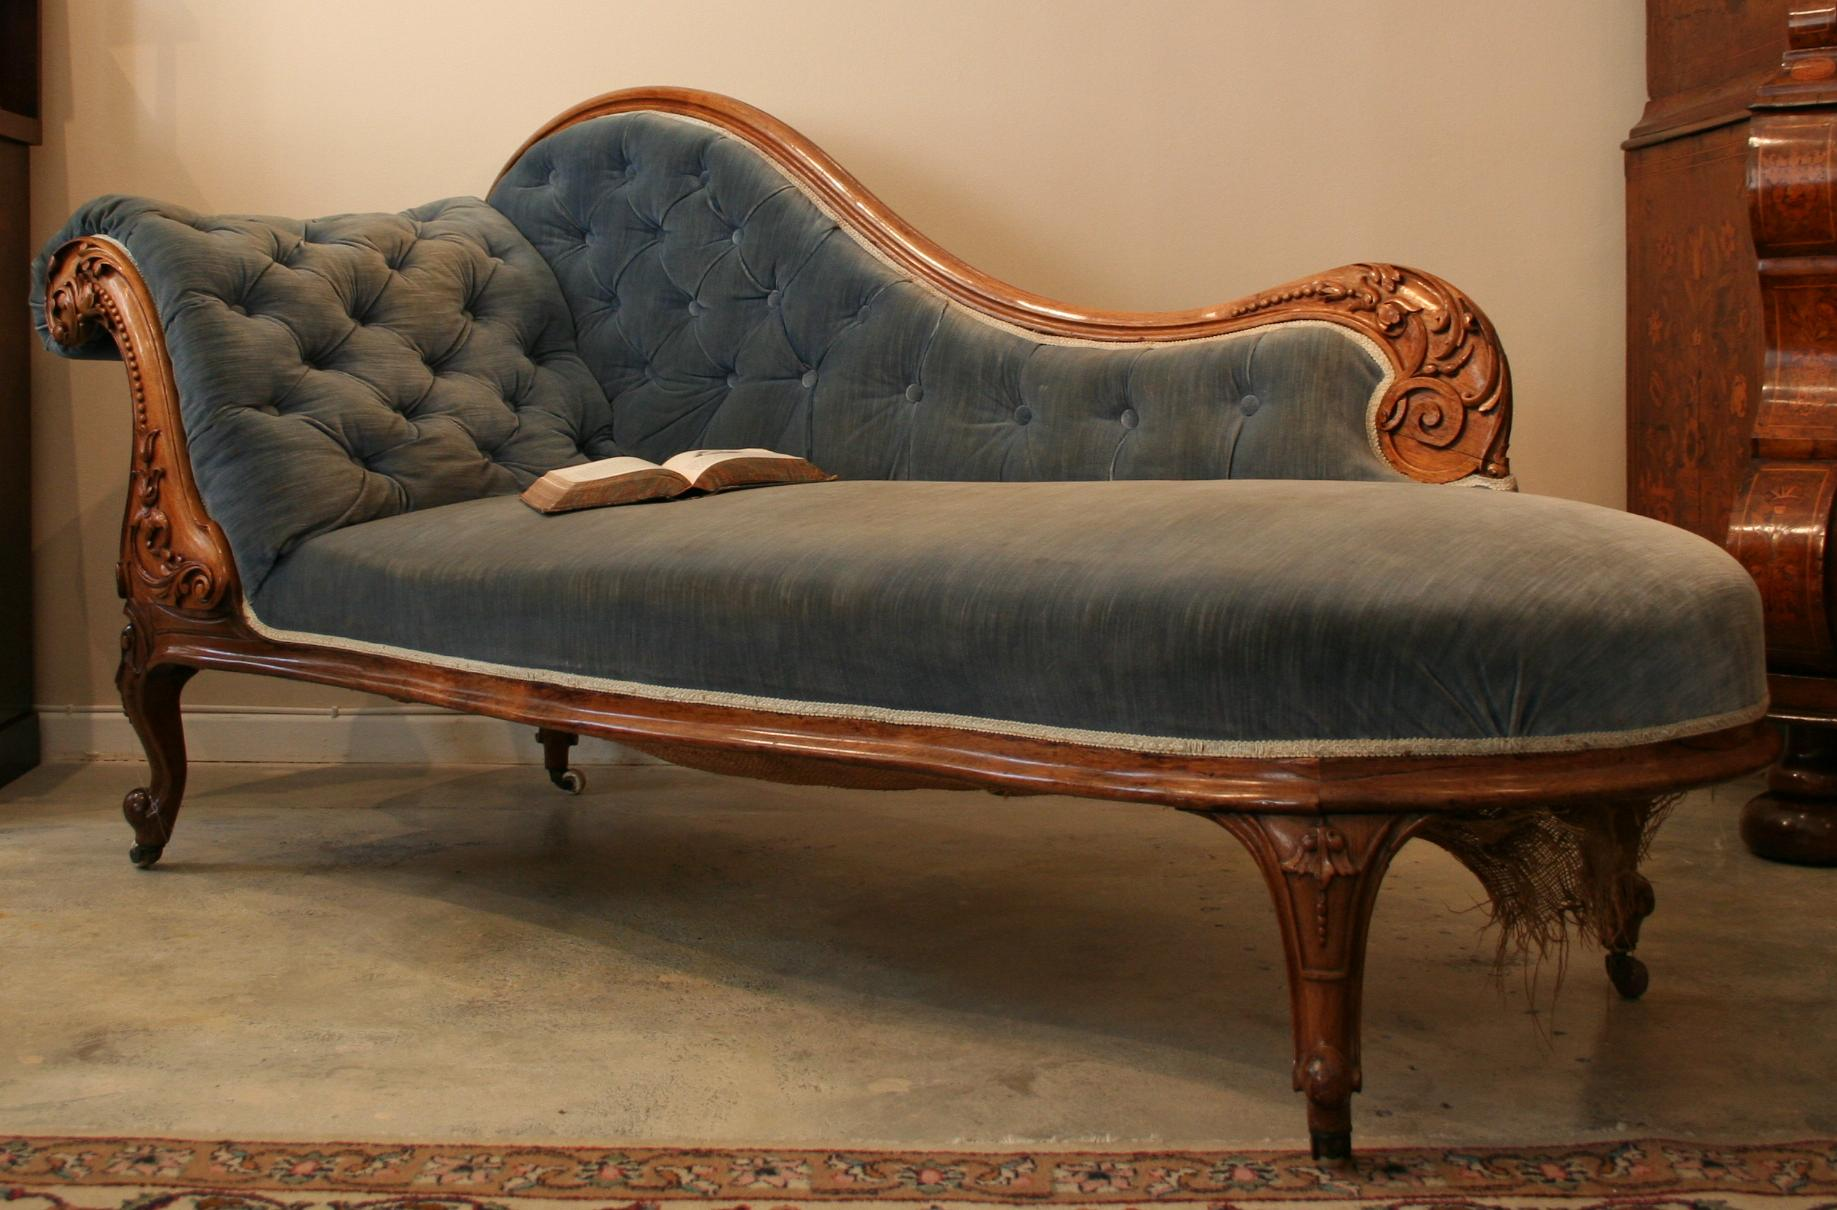 1000 ideas about victorian chaise lounge chairs on pinterest victorian furniture victorian throws and black lounge